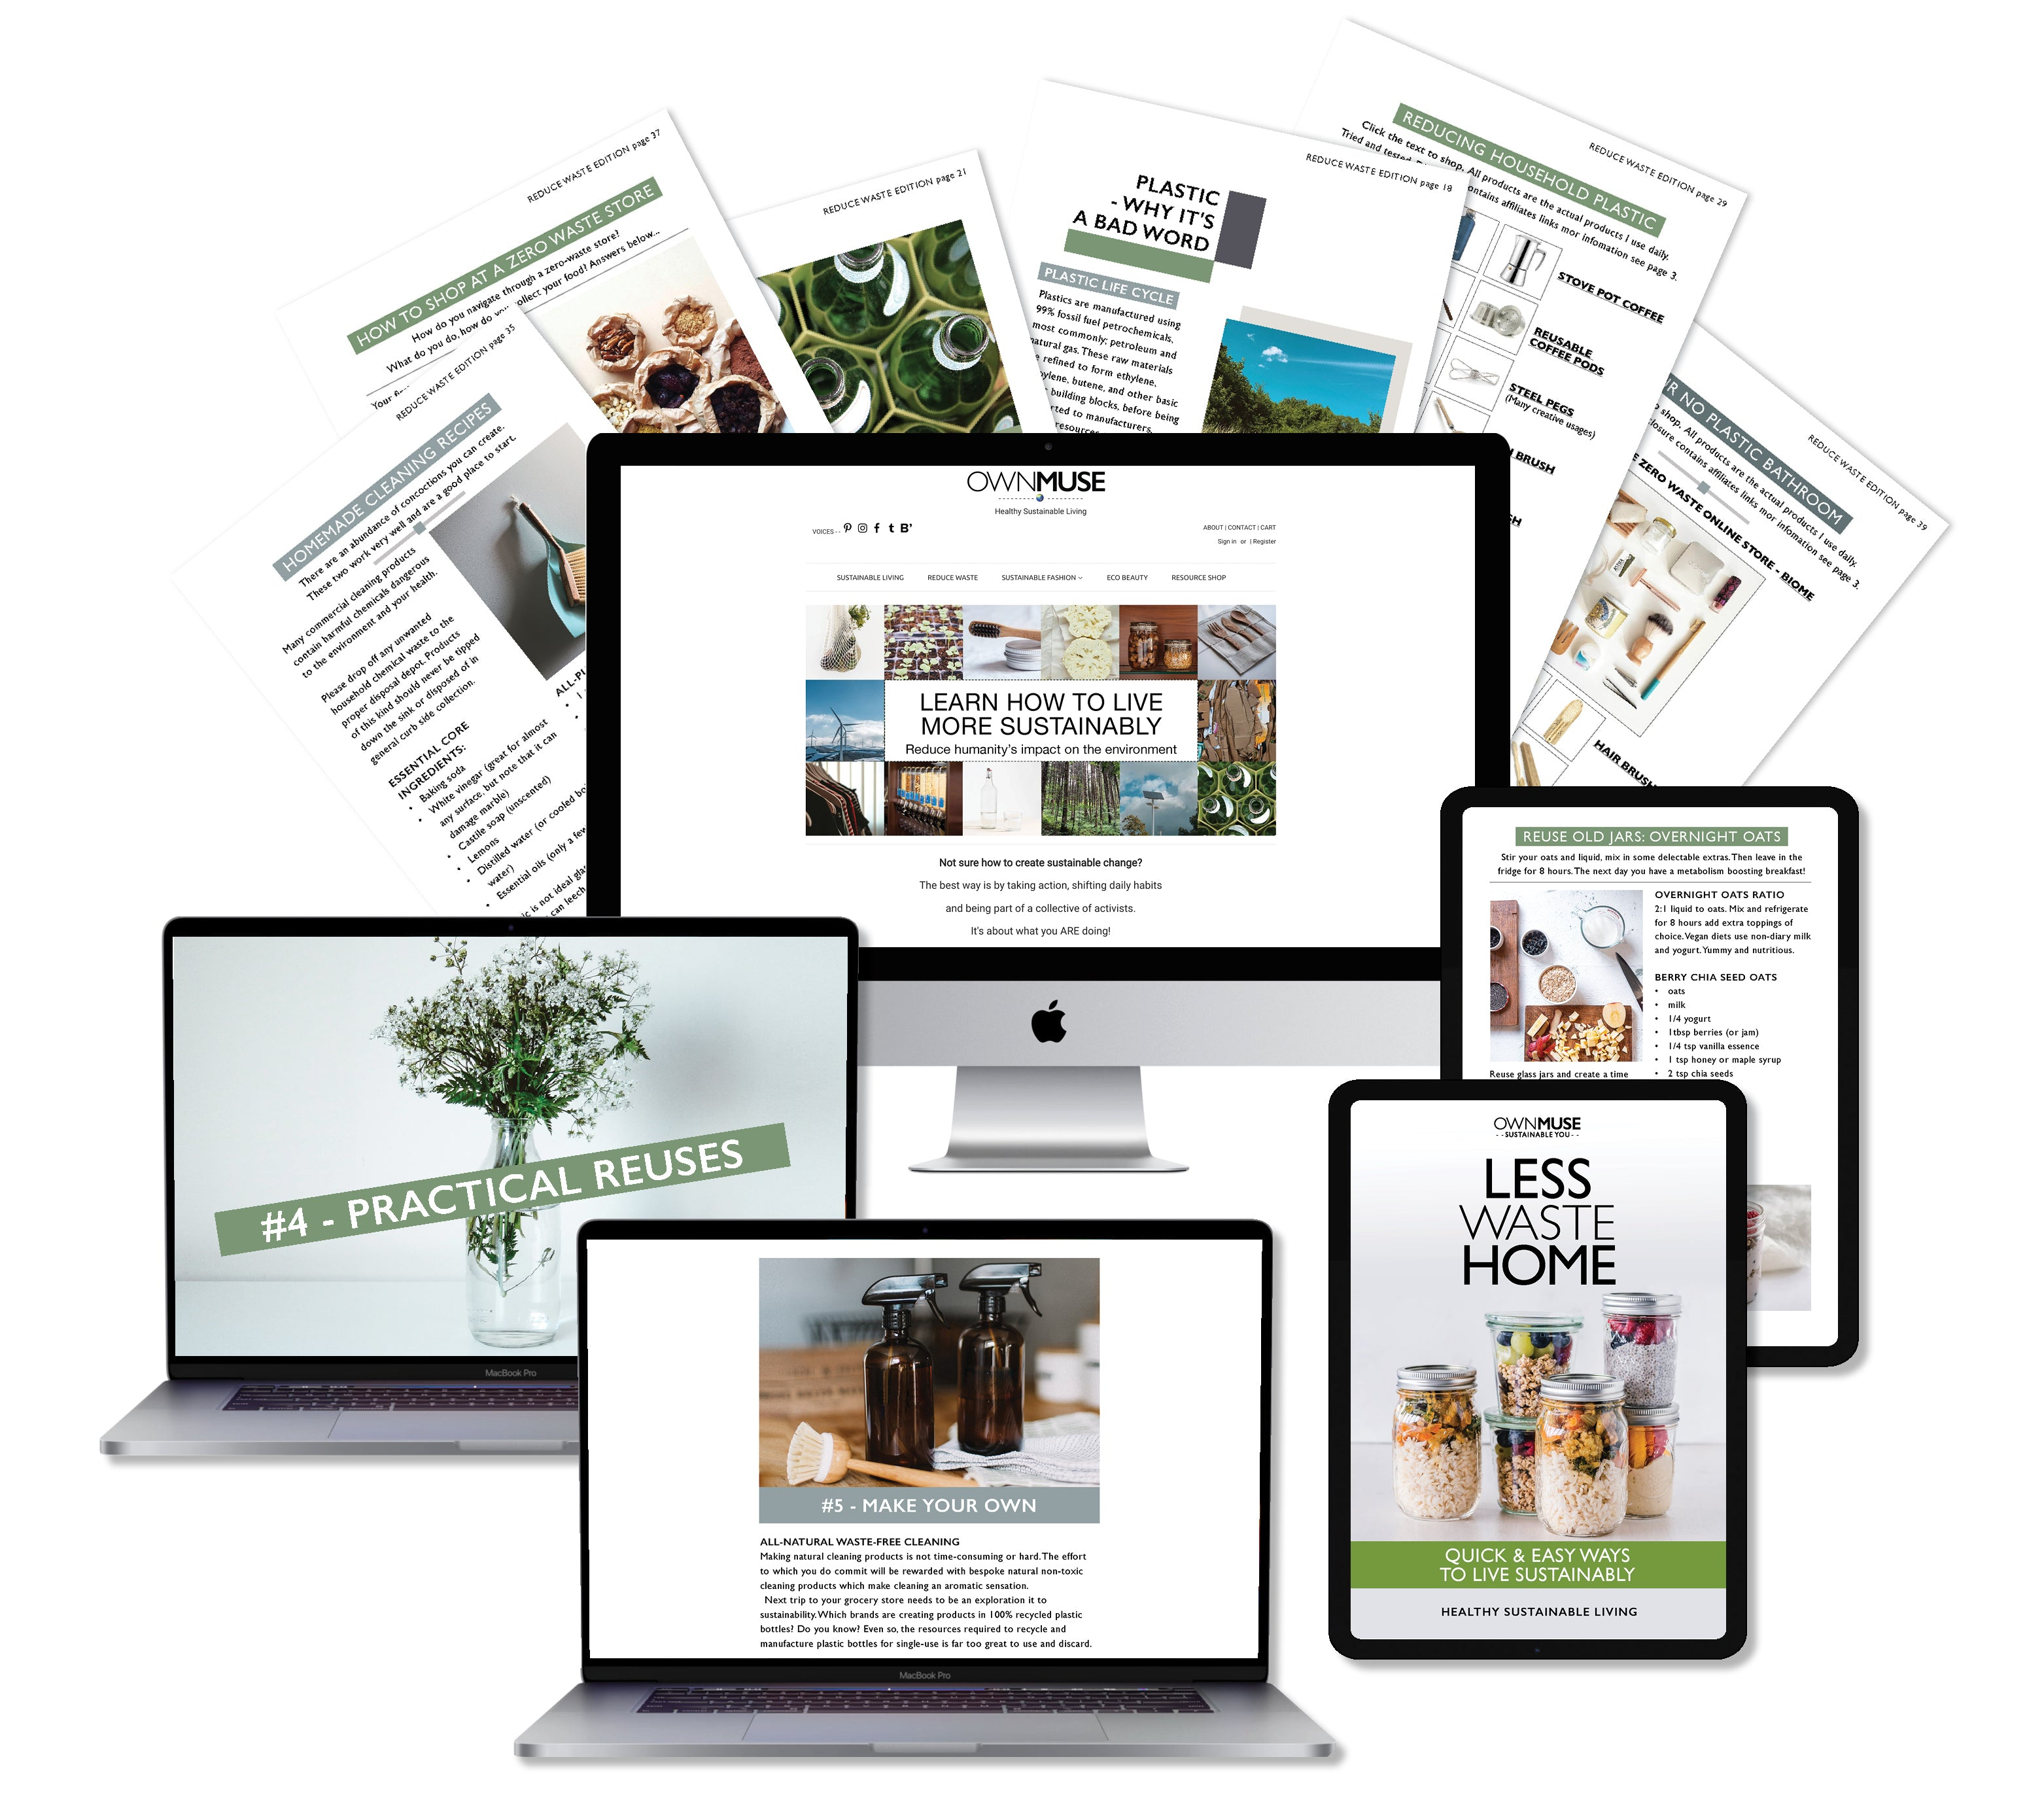 Less Waste Home - Step-by-step Sustainable Living Book